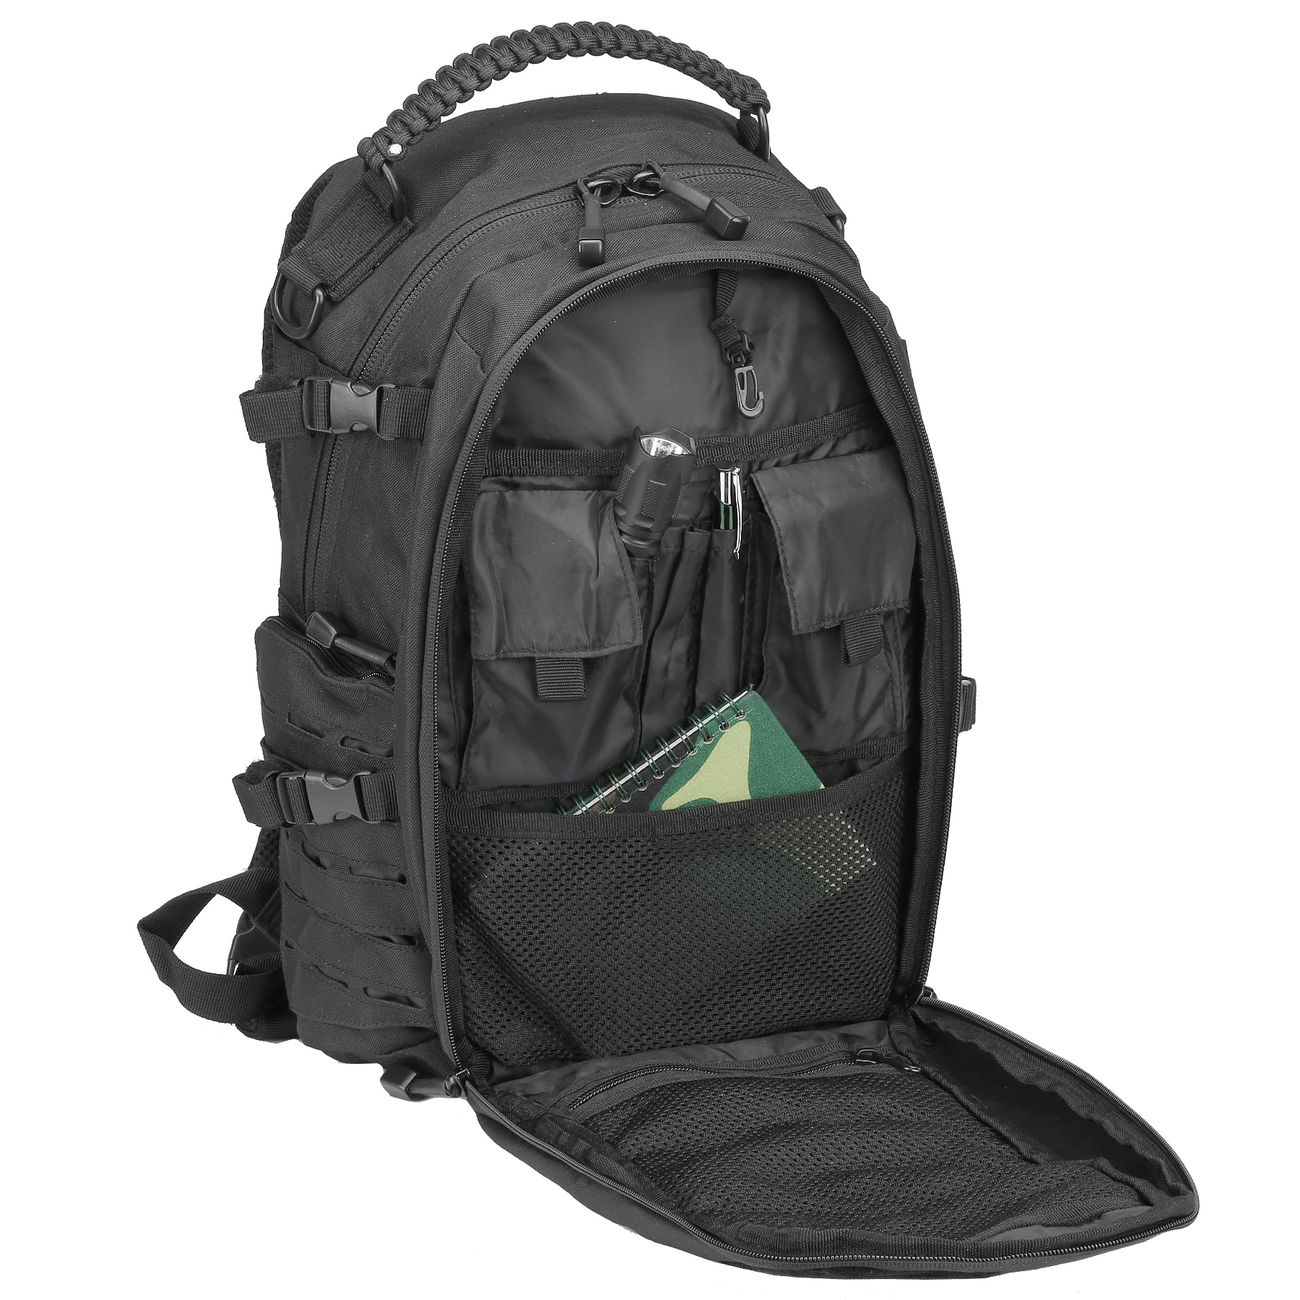 Mil-Tec Rucksack Mission Pack Laser Cut Small schwarz 7